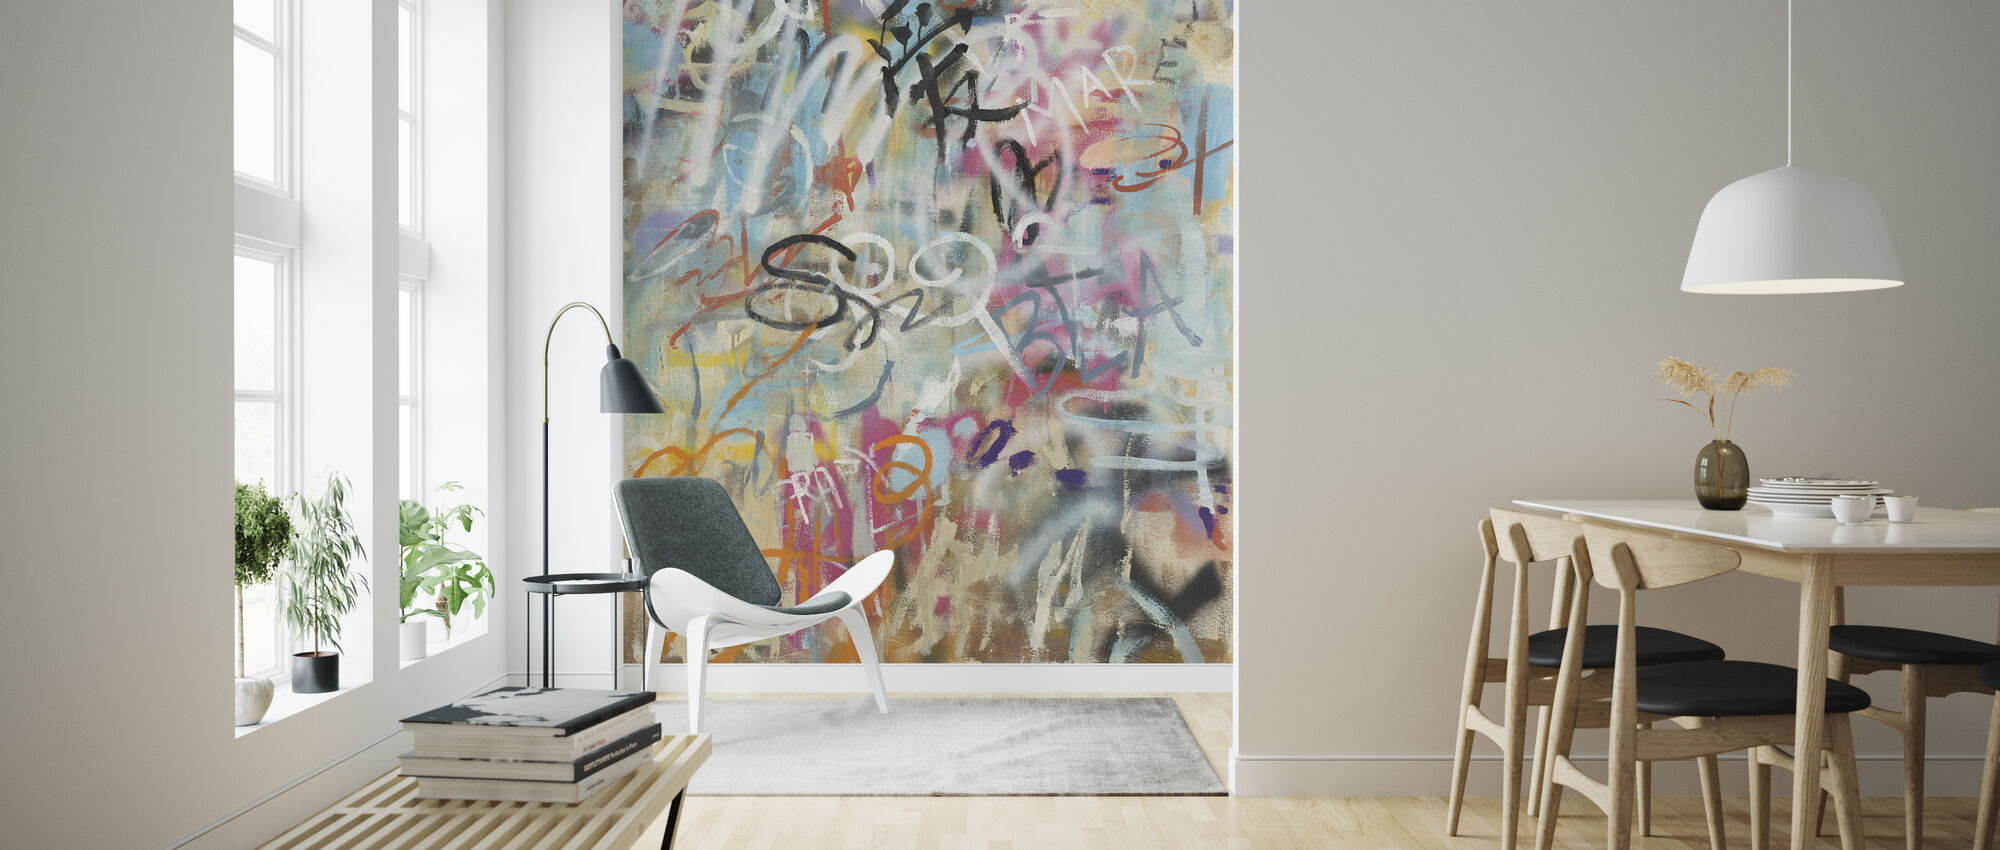 Graffiti Love - Wallpaper - Living Room